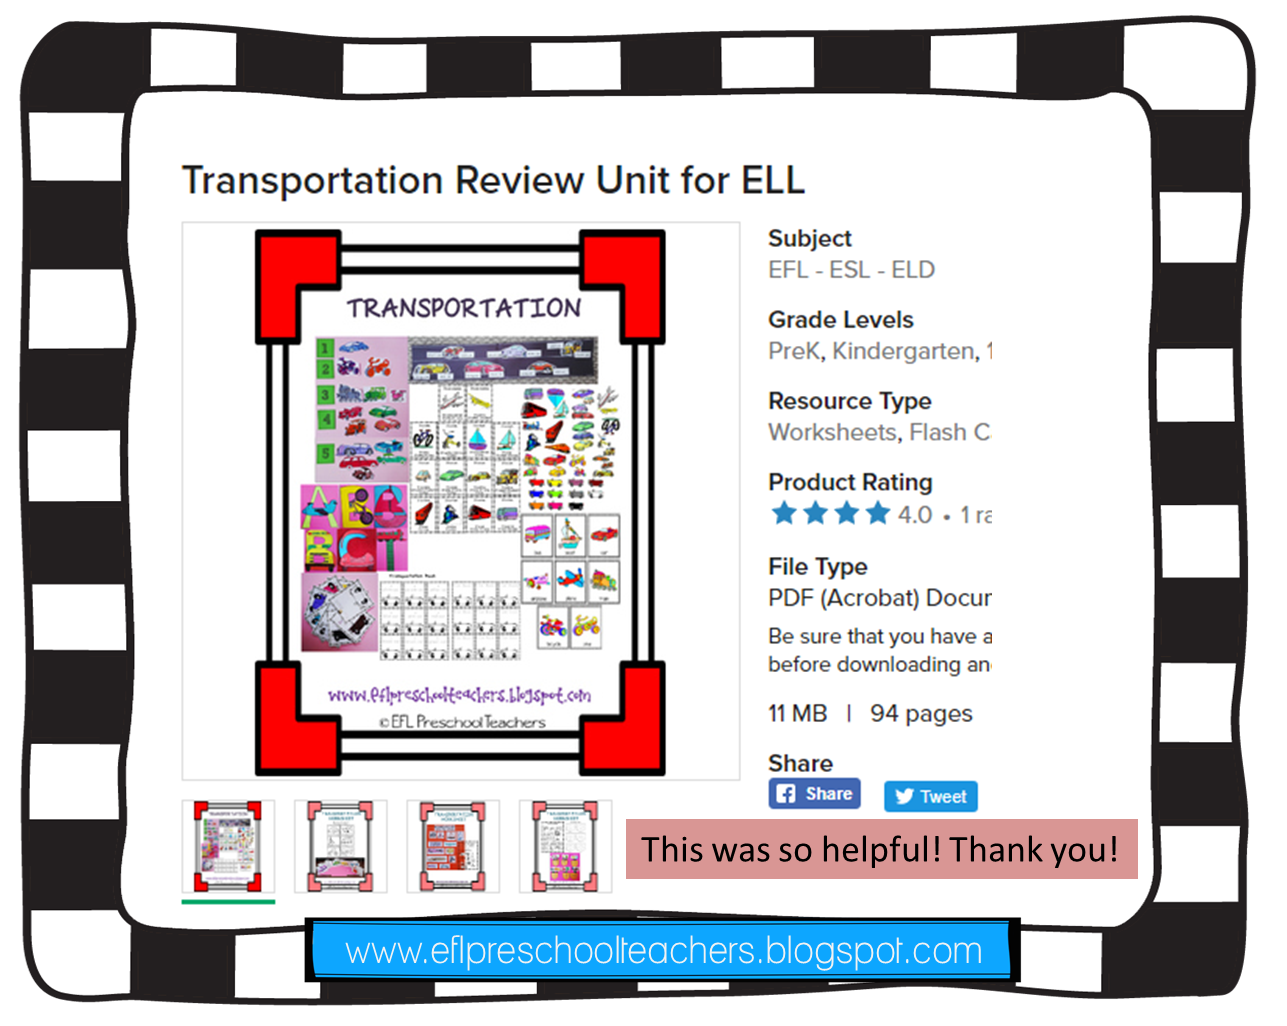 Esl Efl Preschool Teachers Transportation Review Unit For Ell